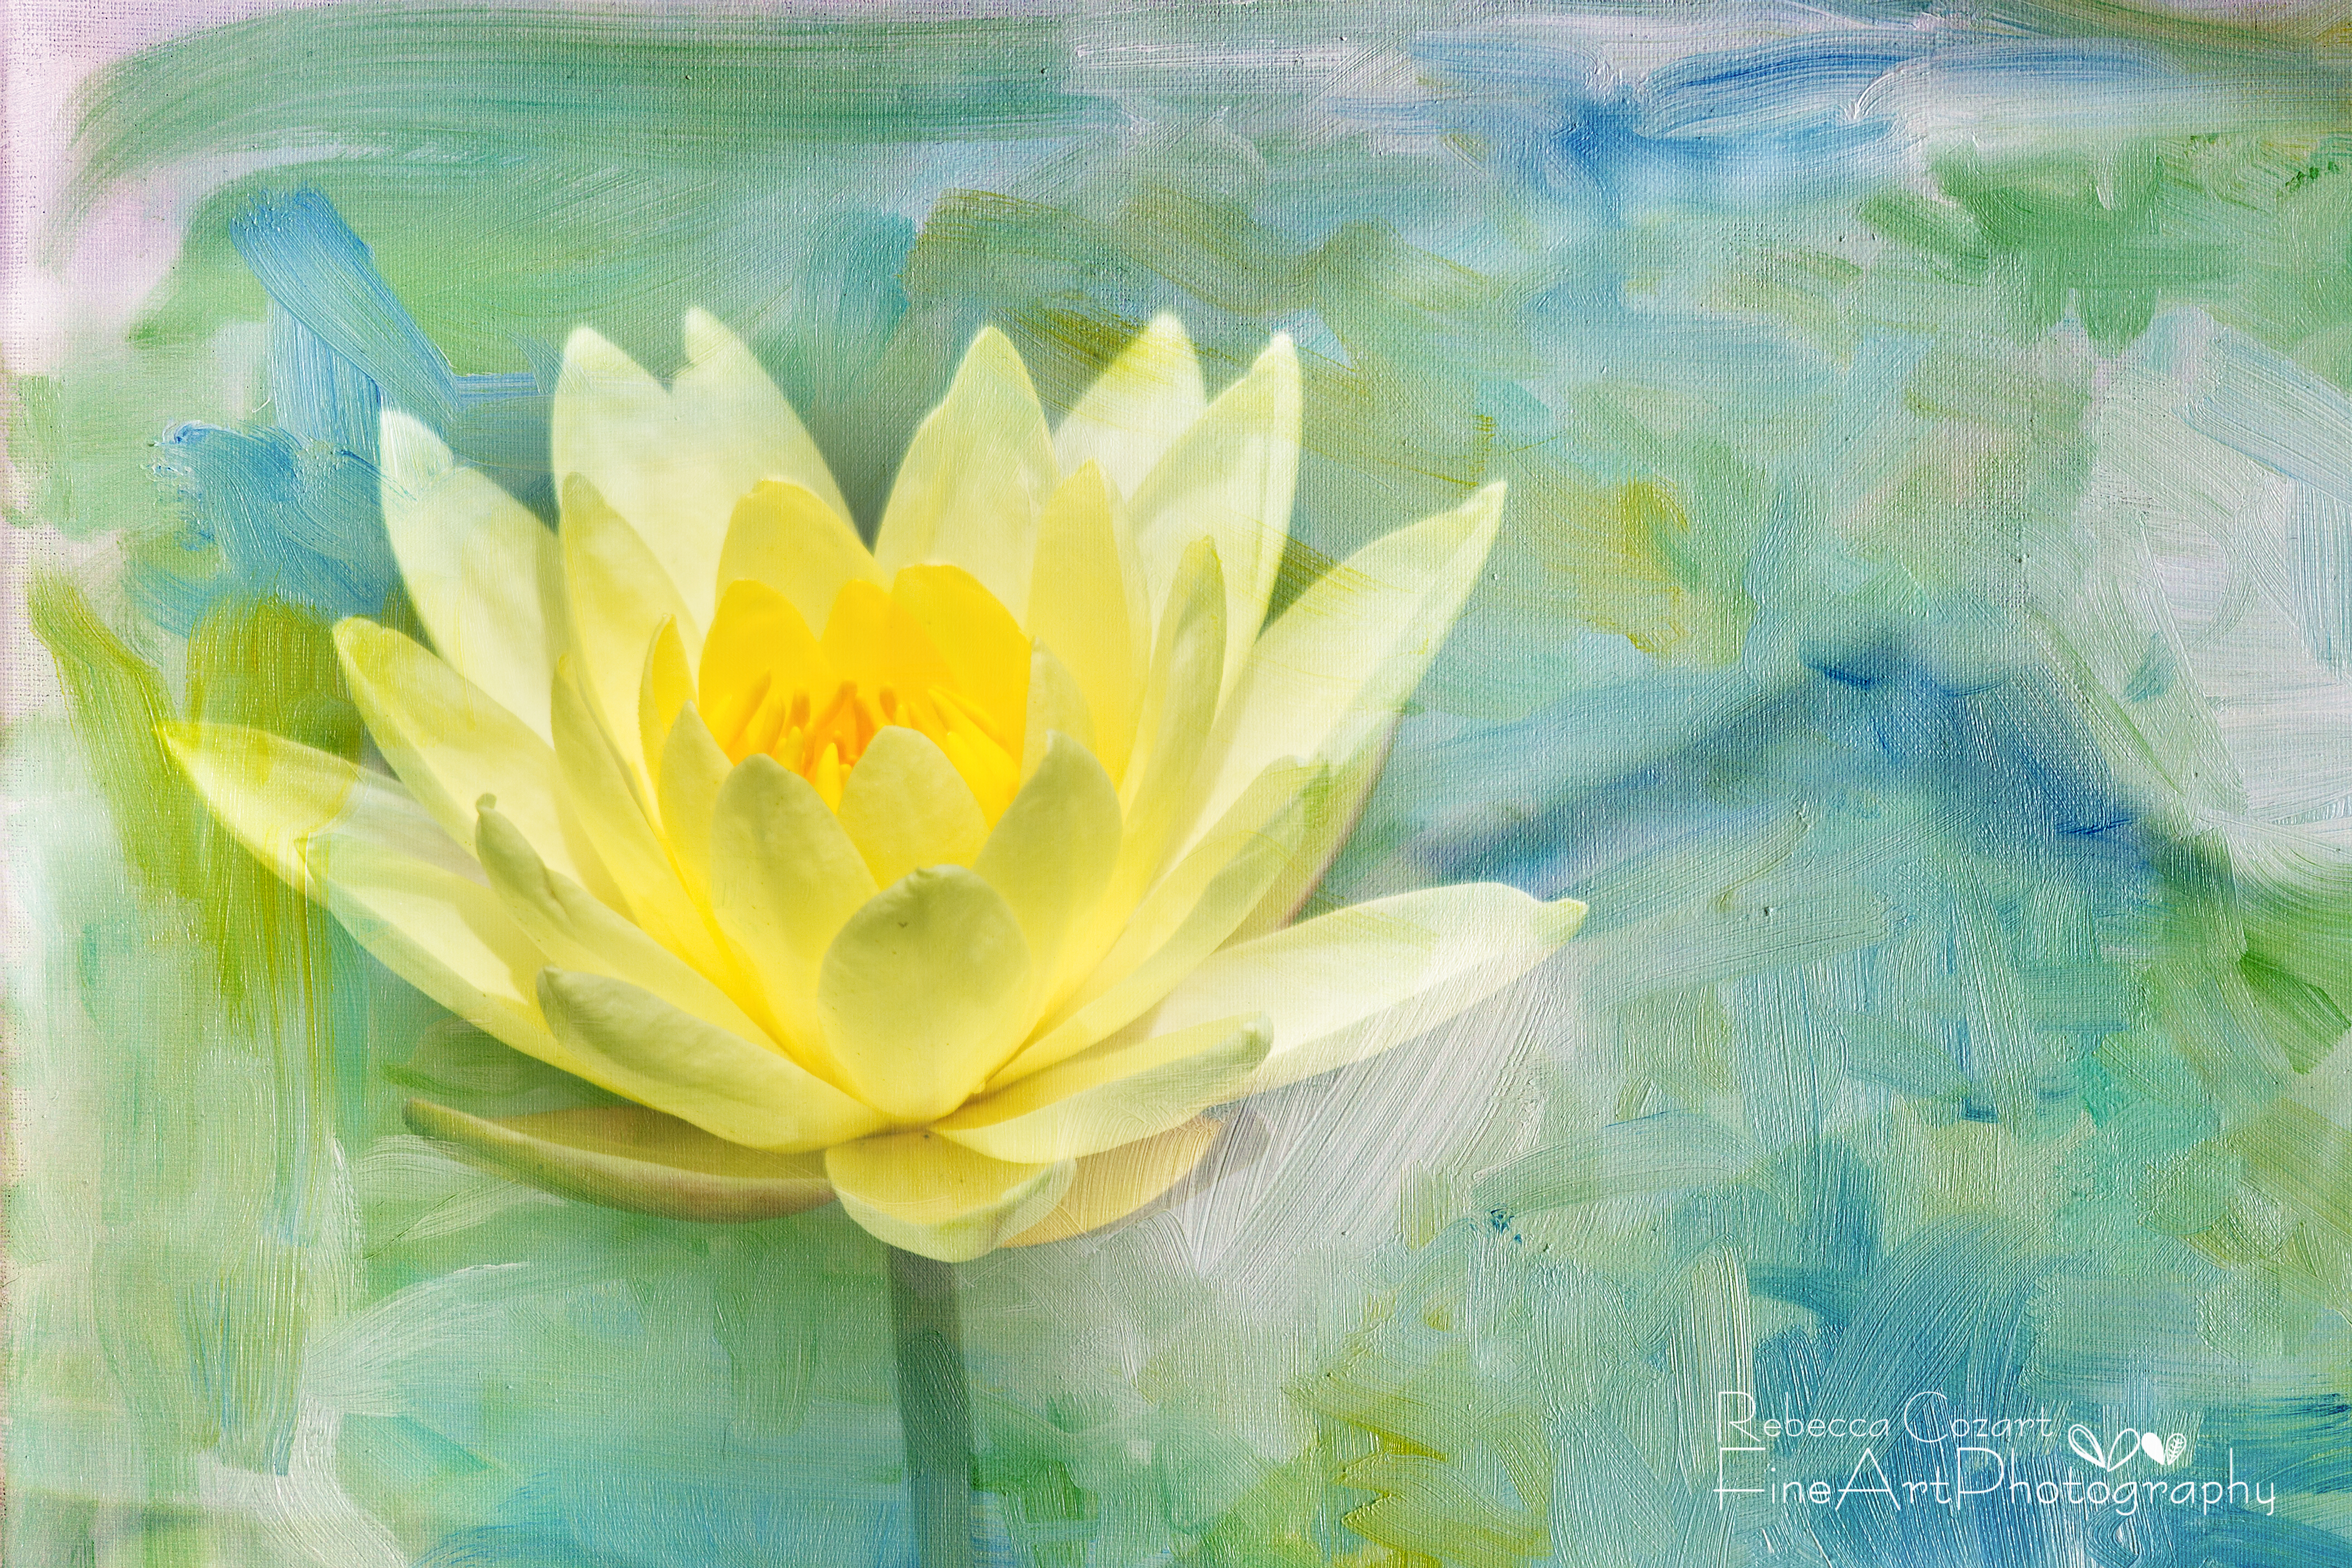 Water lily yellow lily pad with texture eclectic images water lily yellow lily pad with texture izmirmasajfo